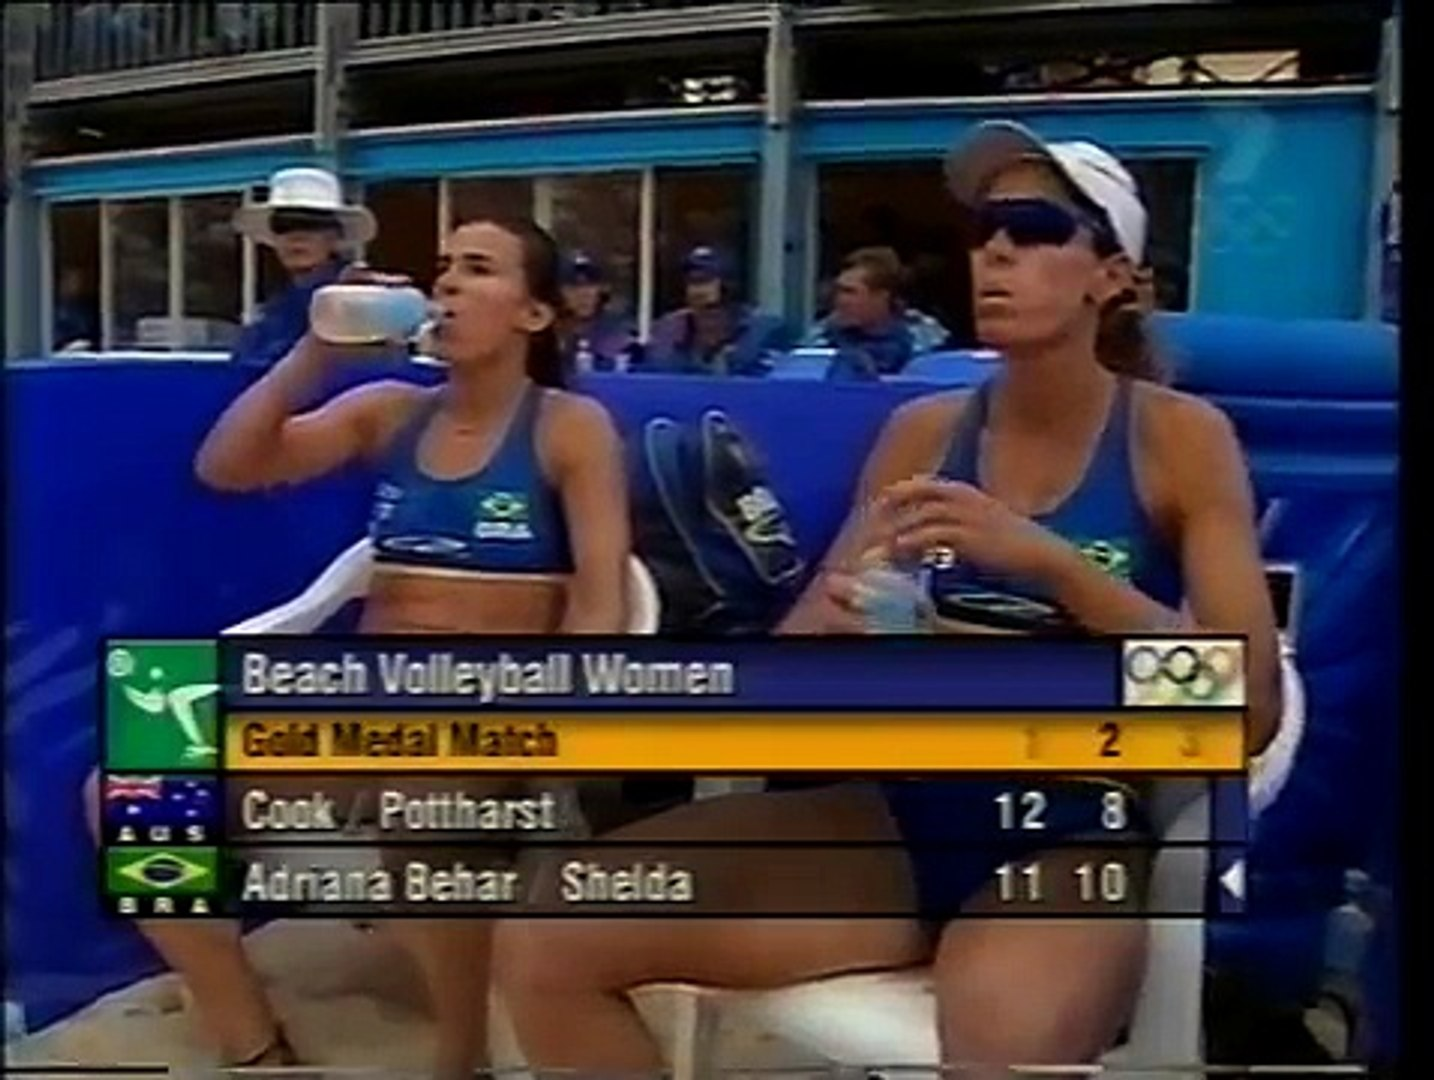 Sydney 2000 Olympics Women S Beach Volleyball Australia Vs Brazil Gold Medal Match Final Stages Video Dailymotion